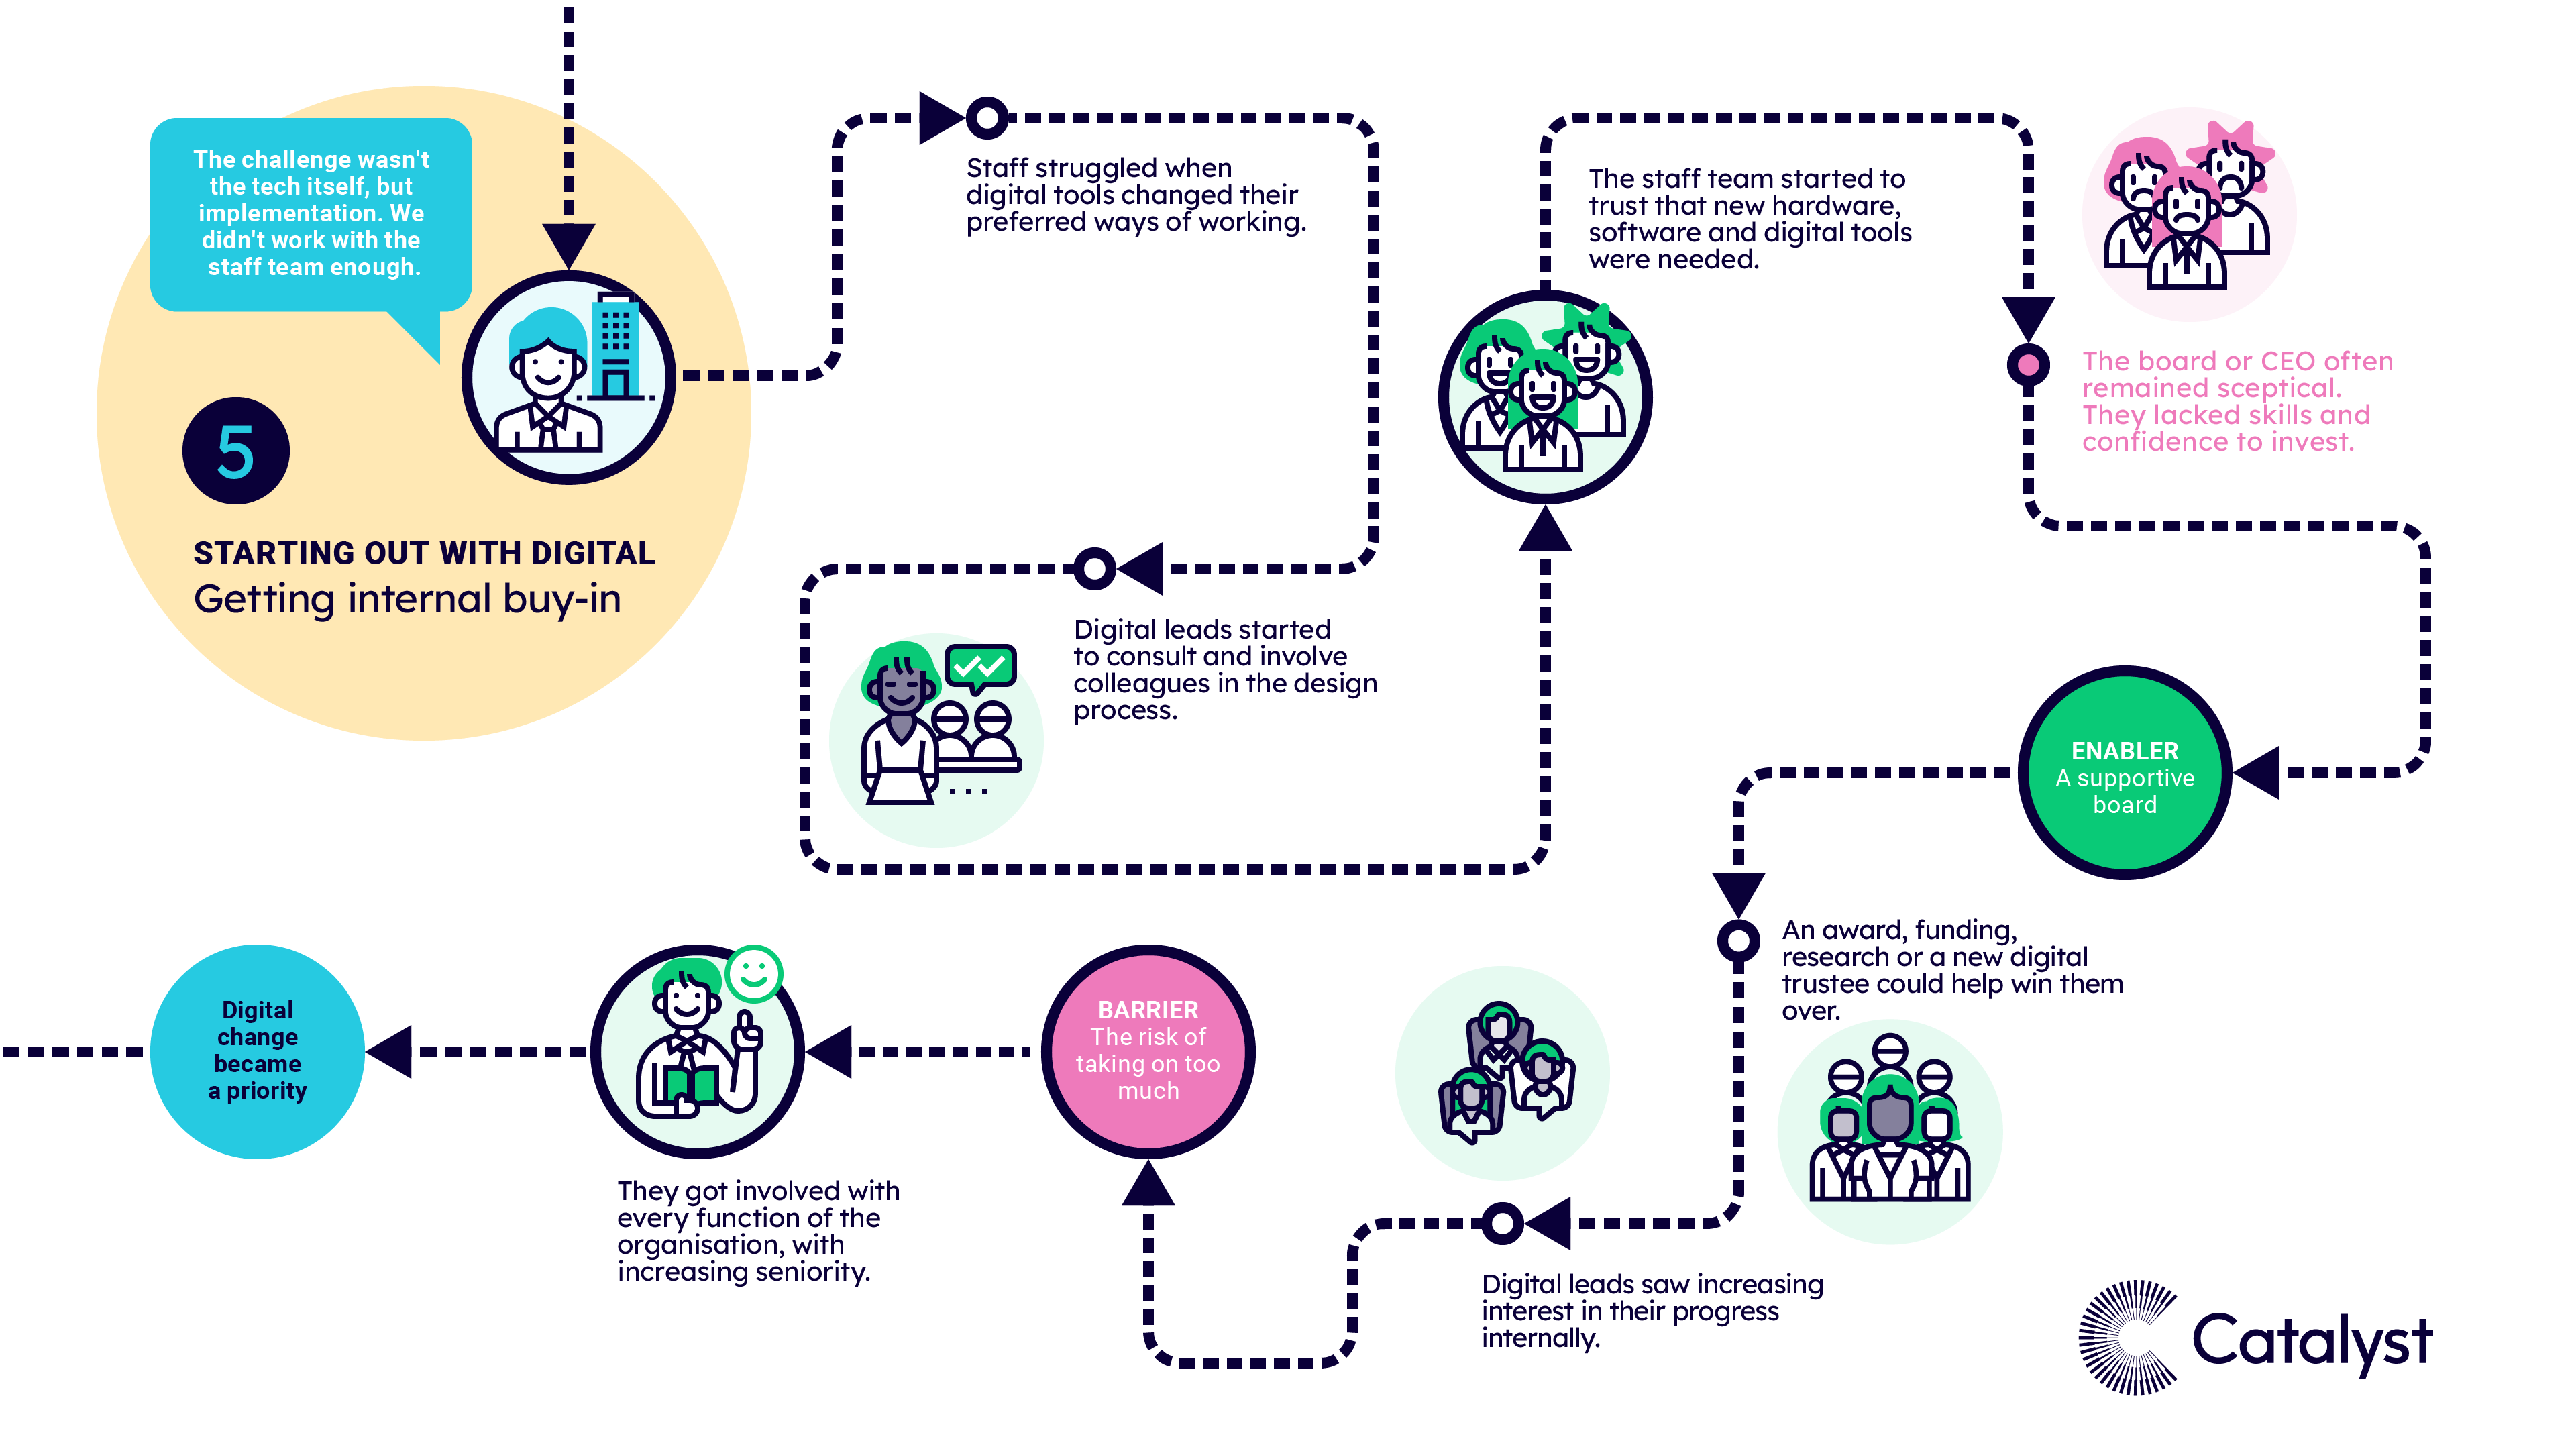 A visual map of pattern 5, when charities were starting out with digital and getting internal buy-in from staff and leadership. The text highlights the most common experiences, risk factors, barriers and enablers at this stage of the journey.